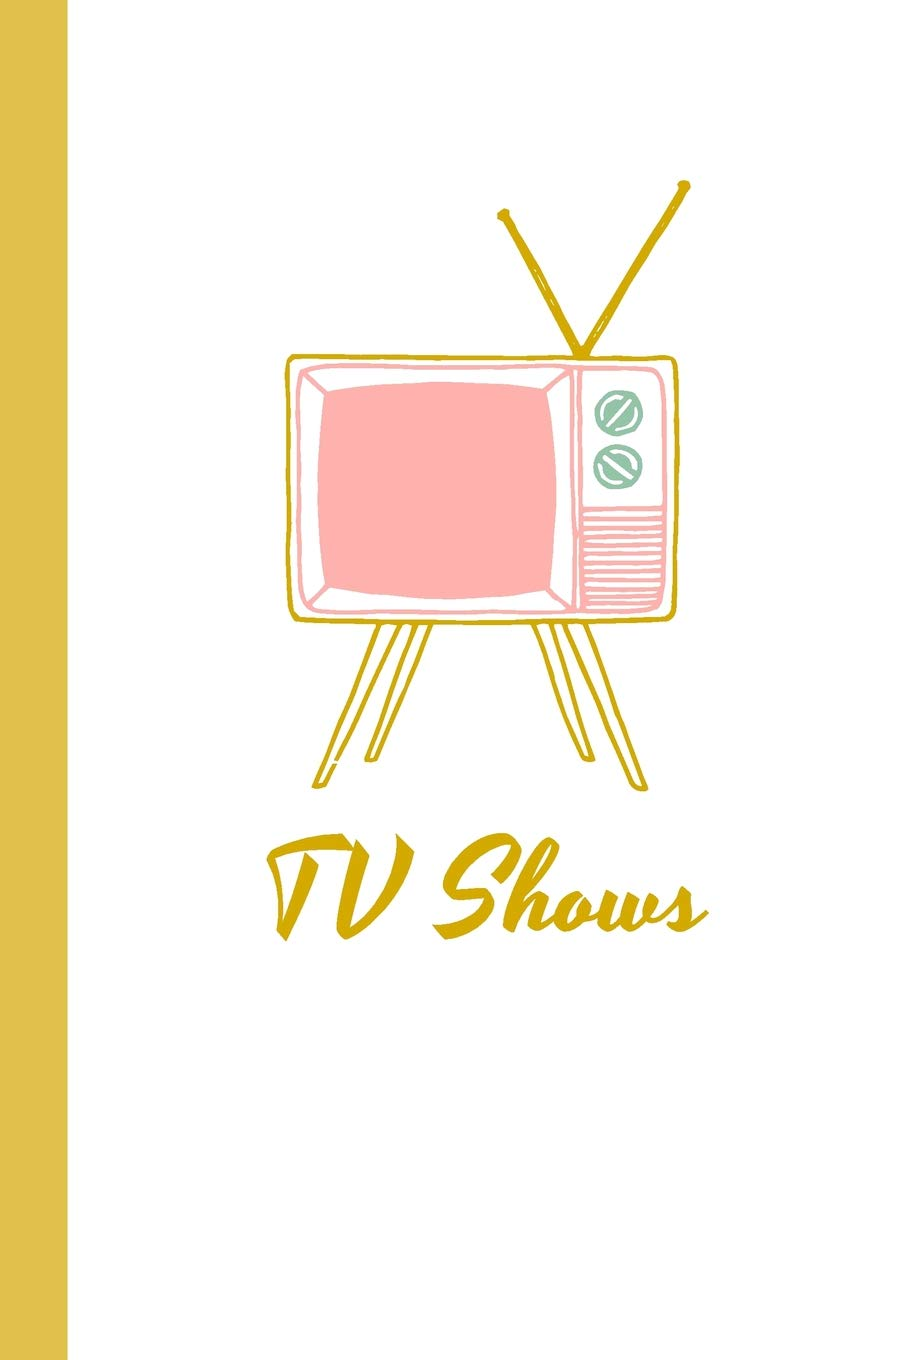 TV Shows: A Notebook for Recording Lists of TV Shows You Want to Watch, Favorites to Recommend and Your Reviews and Notes | Cute Retro Cover